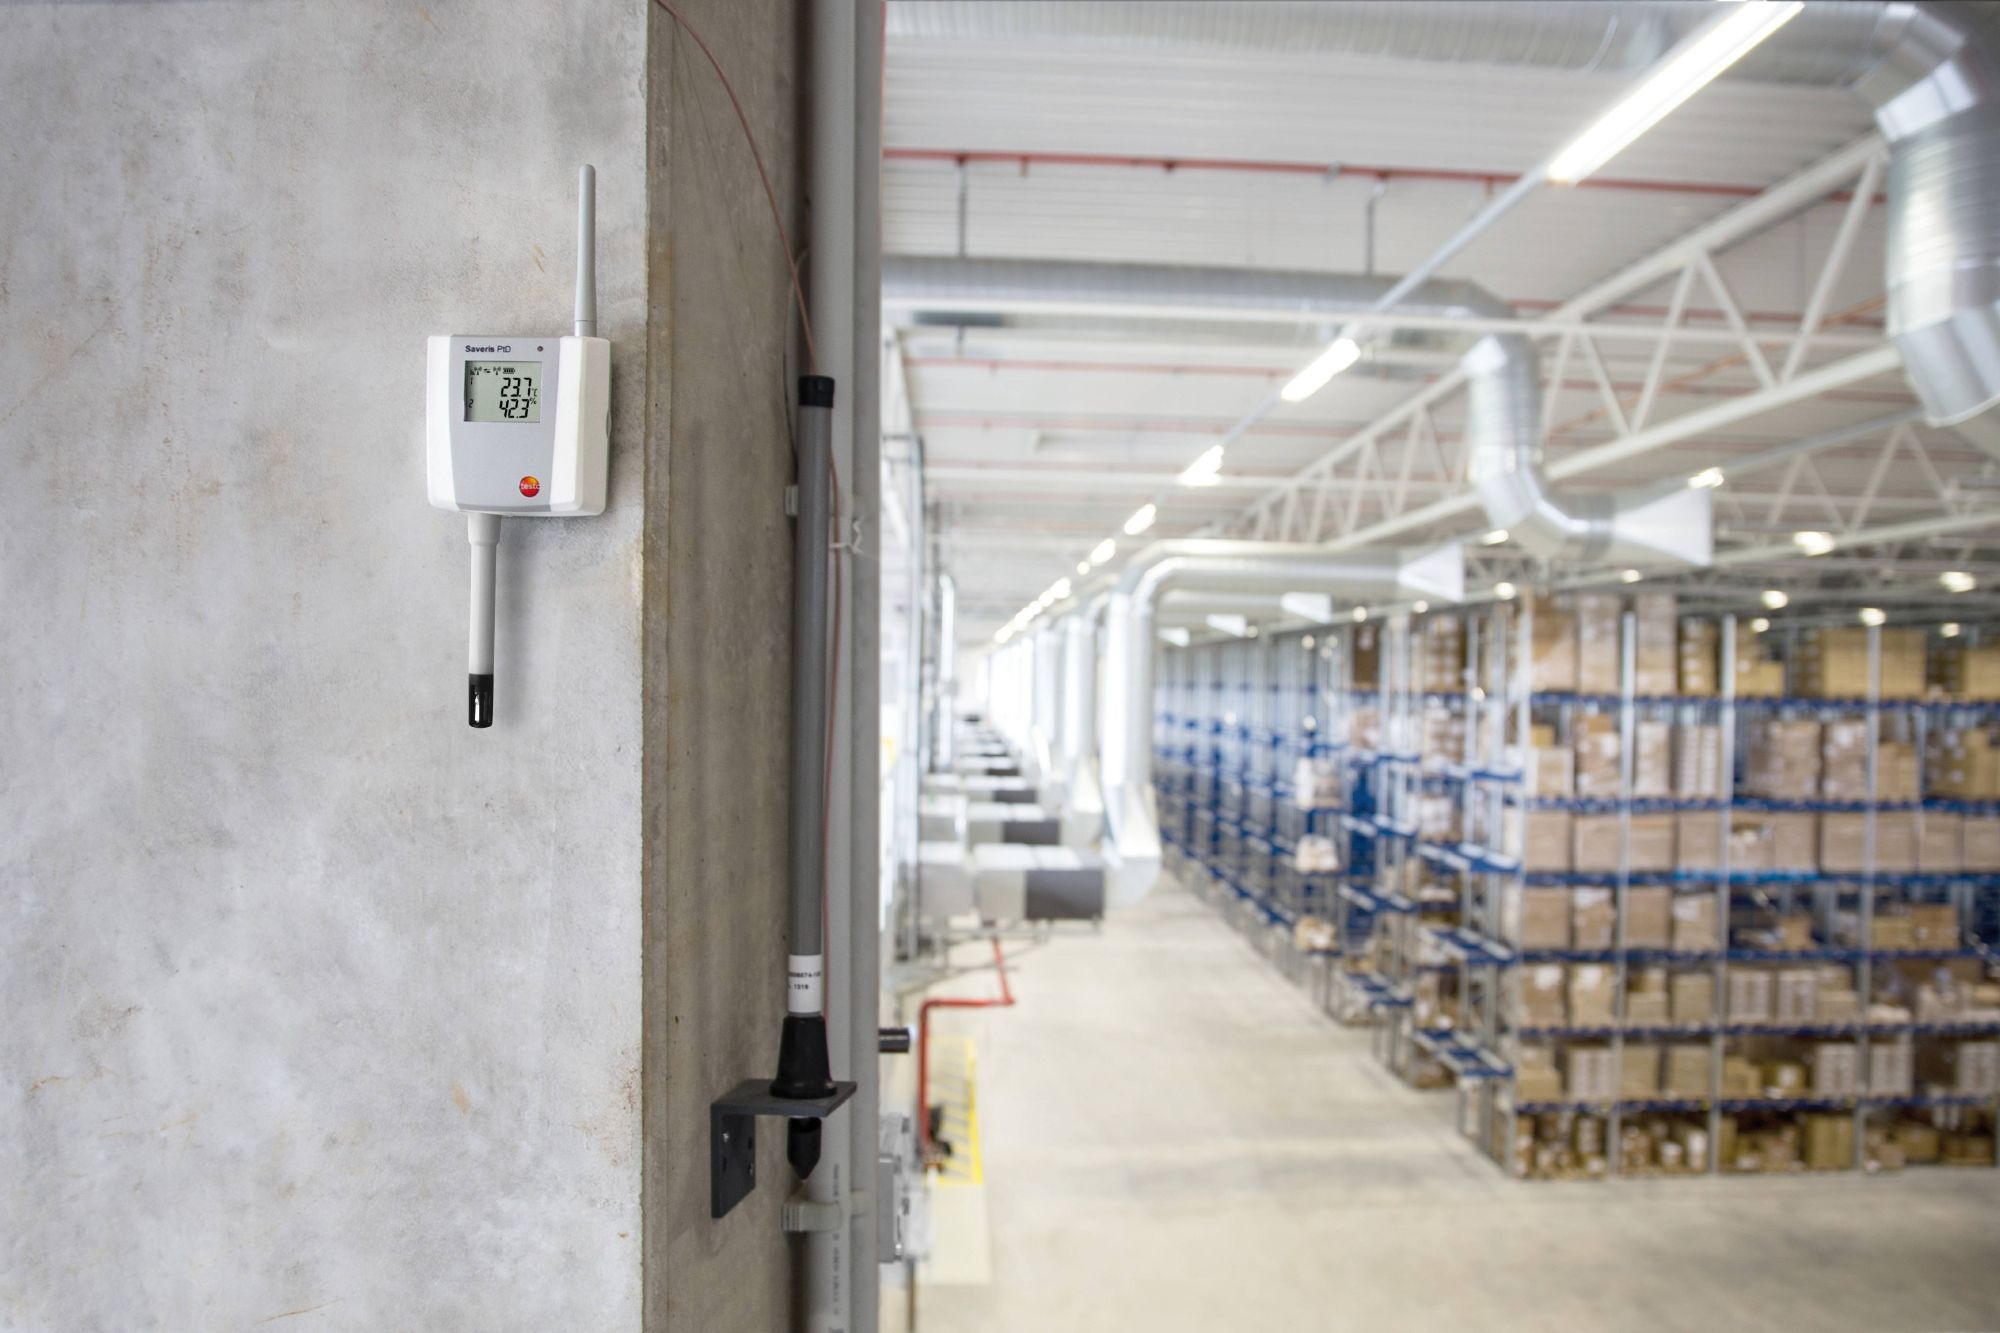 Indoor climate monitoring in storage